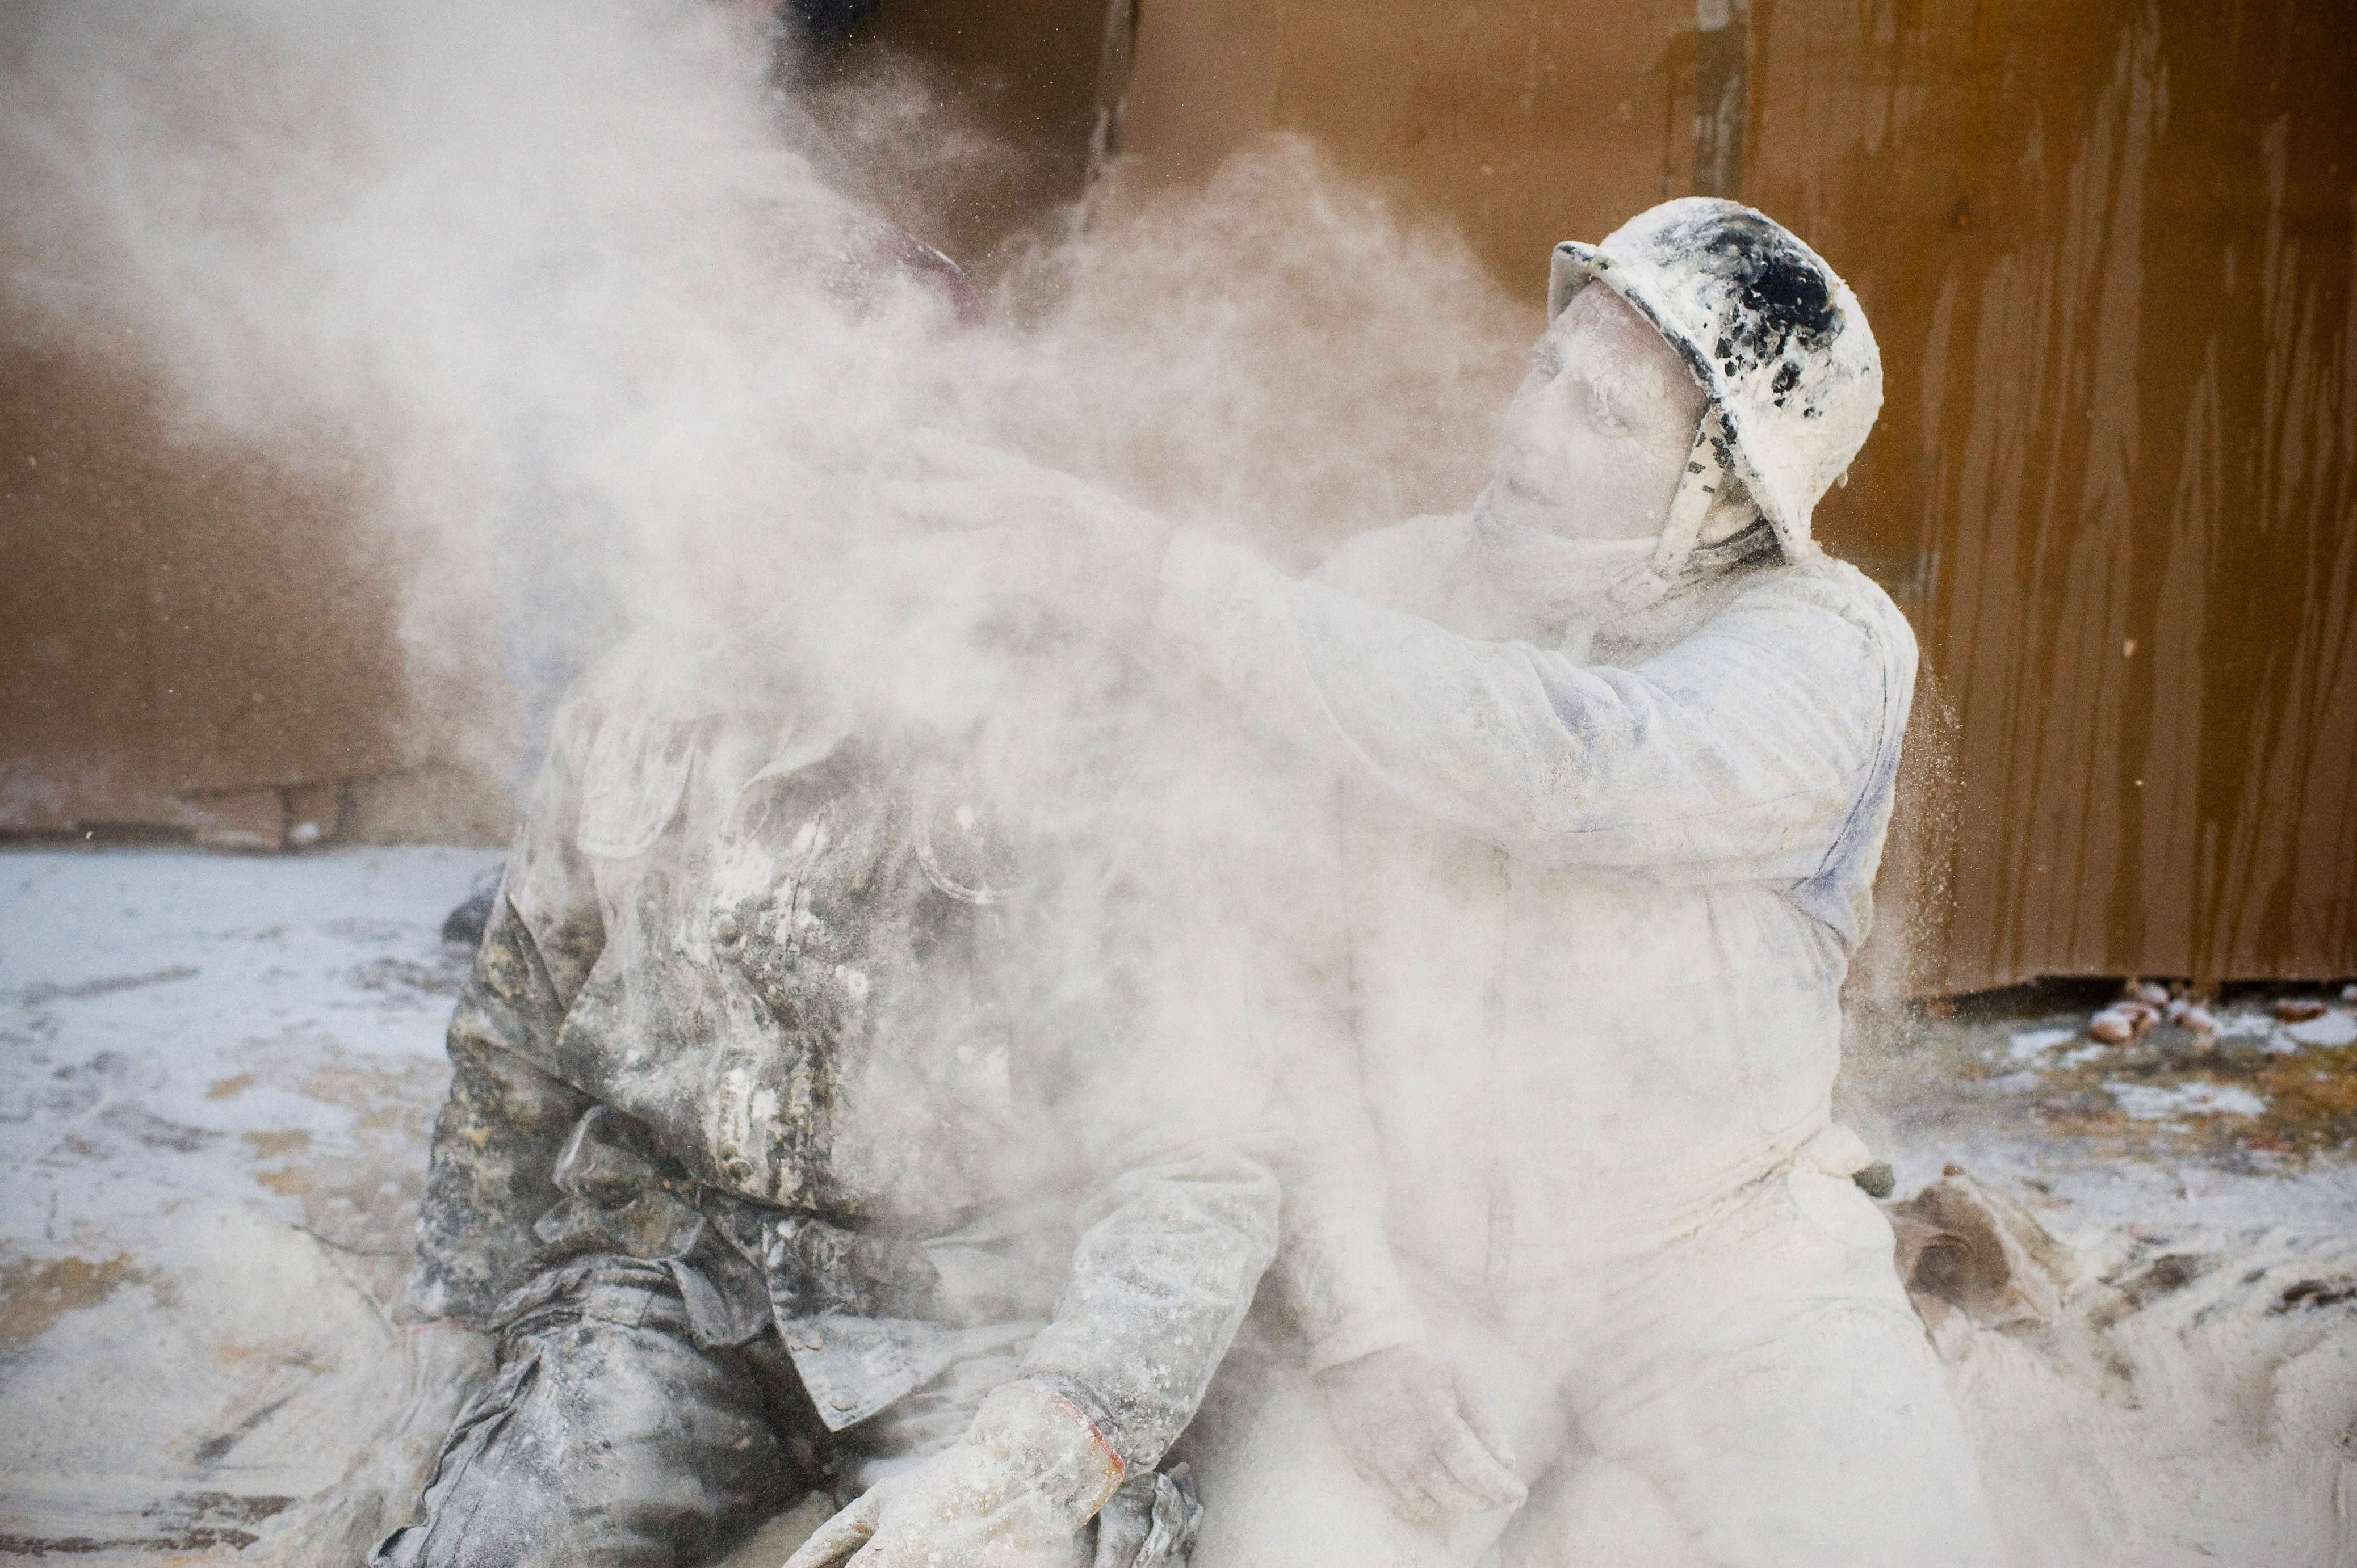 A man throwing flour at a another person during Els Enfarinats